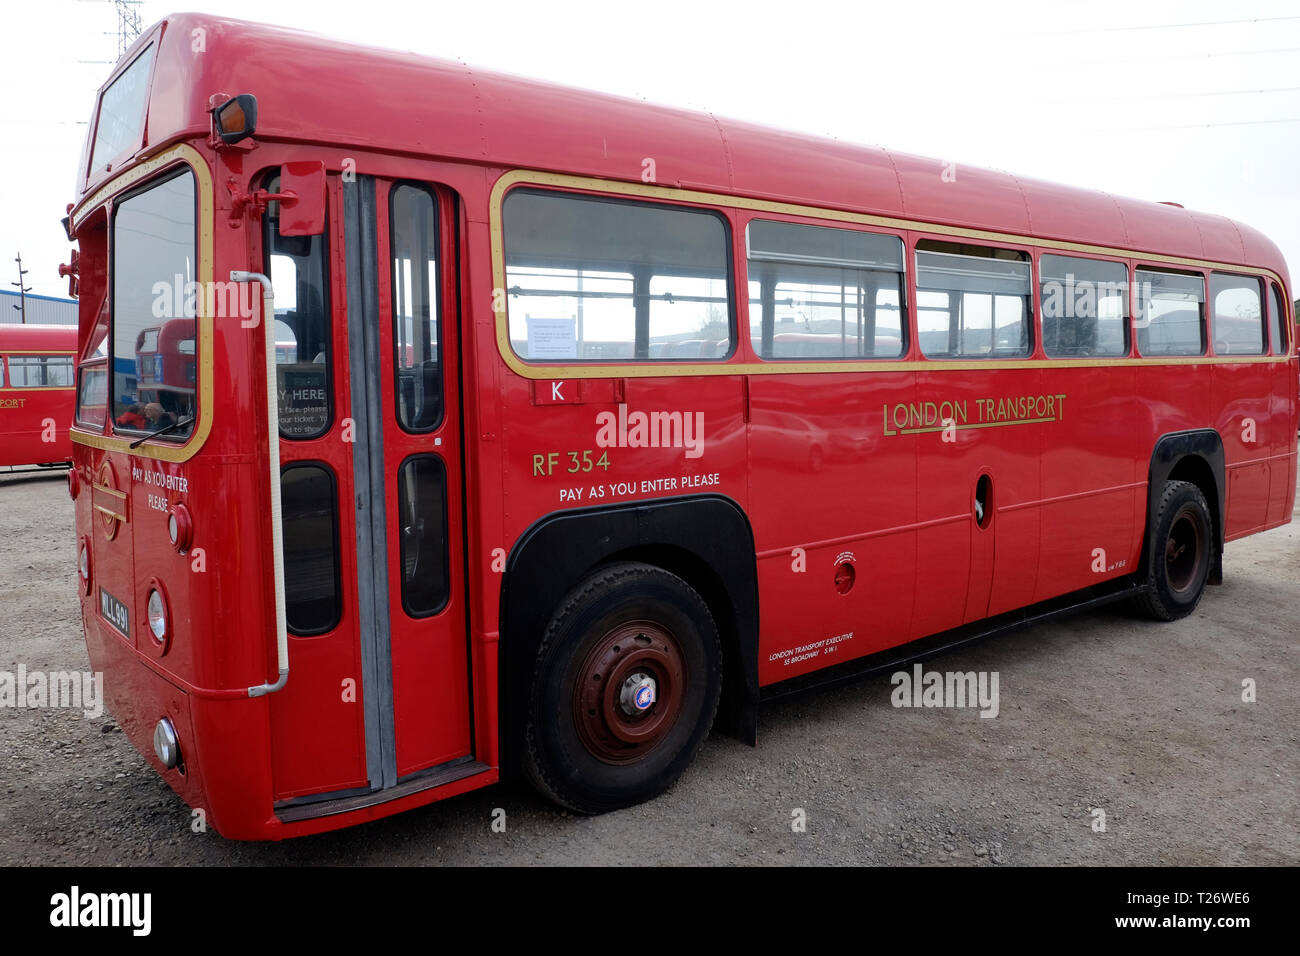 London, UK, 30th March, 2019. London bus museum is running old buses in Barking, and passengers can board them for free. Credit: Yanice Idir / Alamy Live News Stock Photo